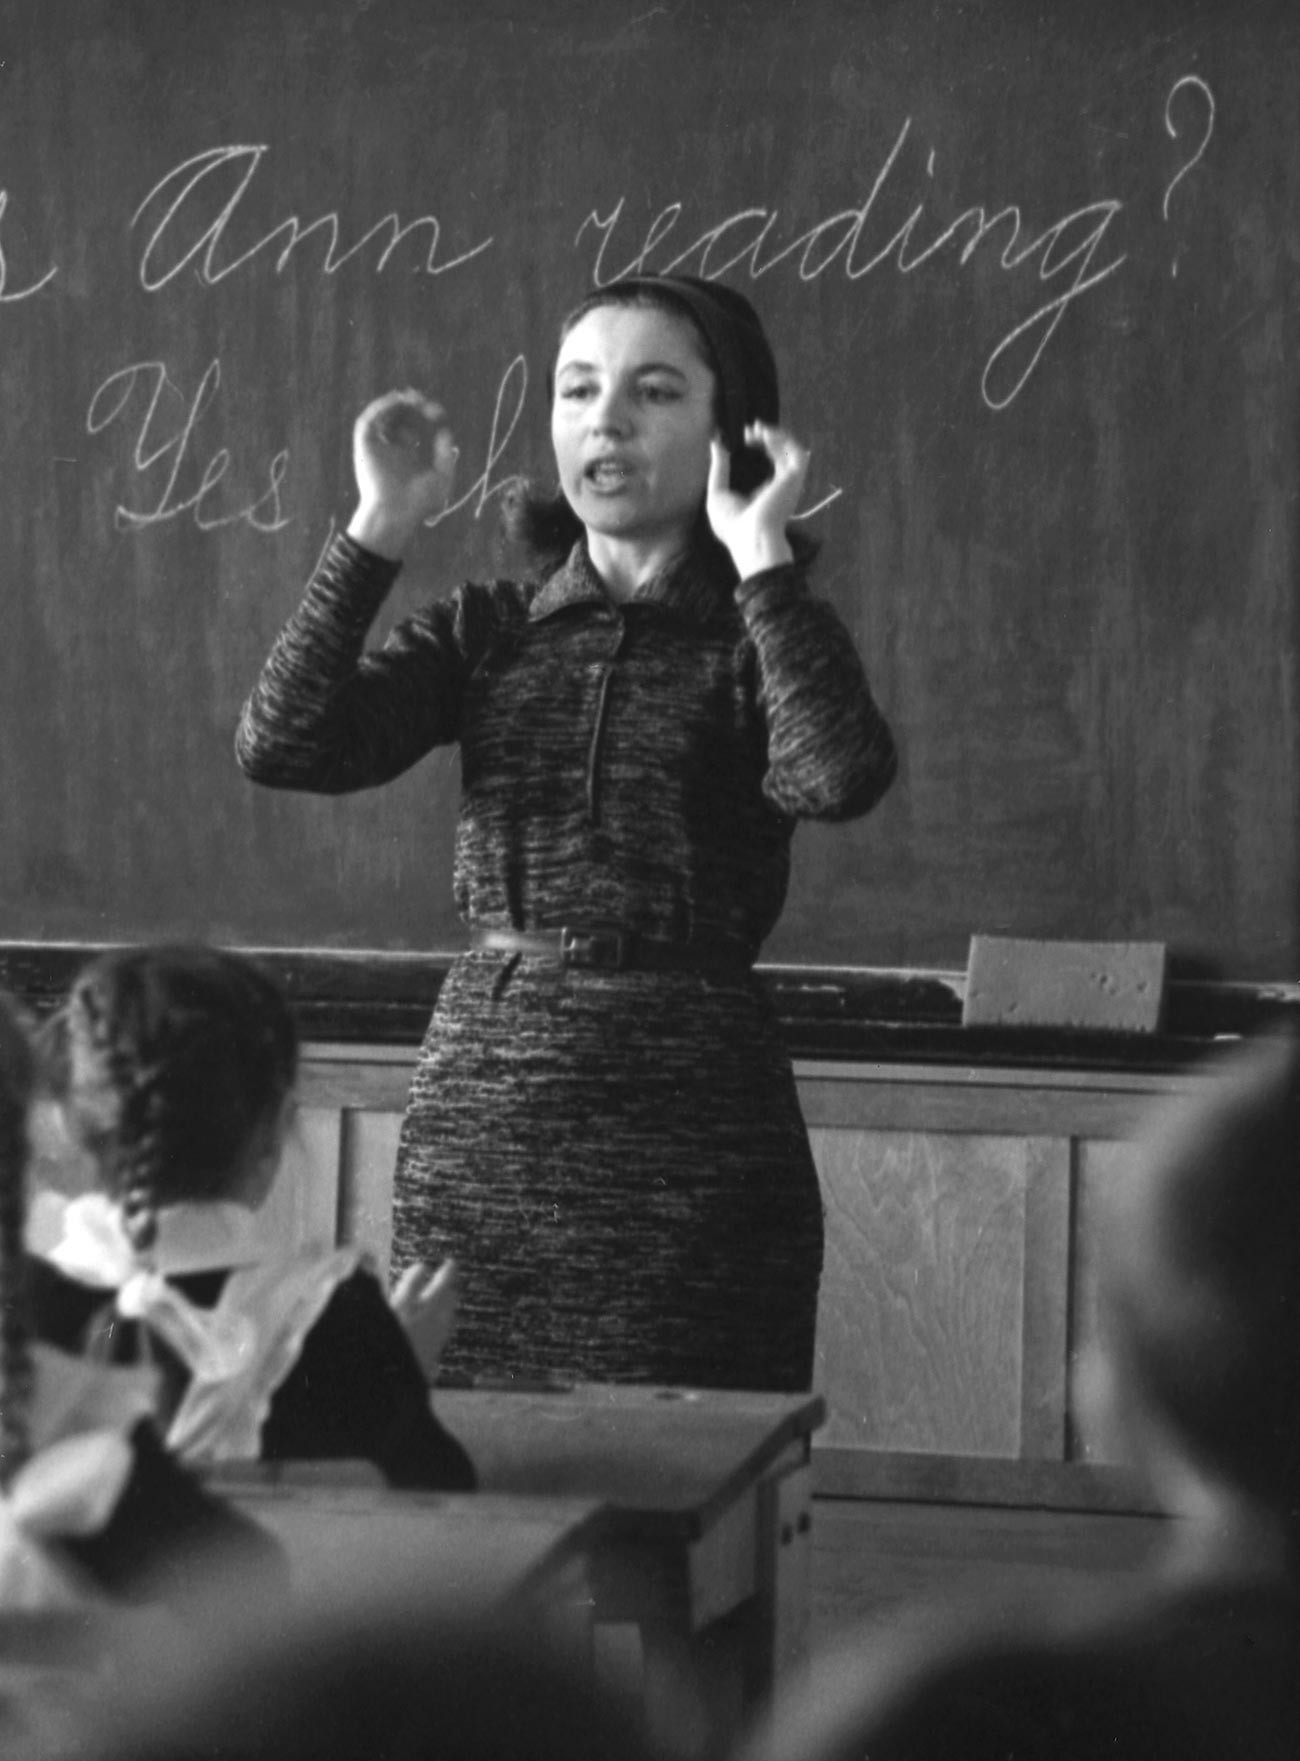 In the early 1960s, during the Thaw, language learning became a central plank of the foreign policy in the USSR.